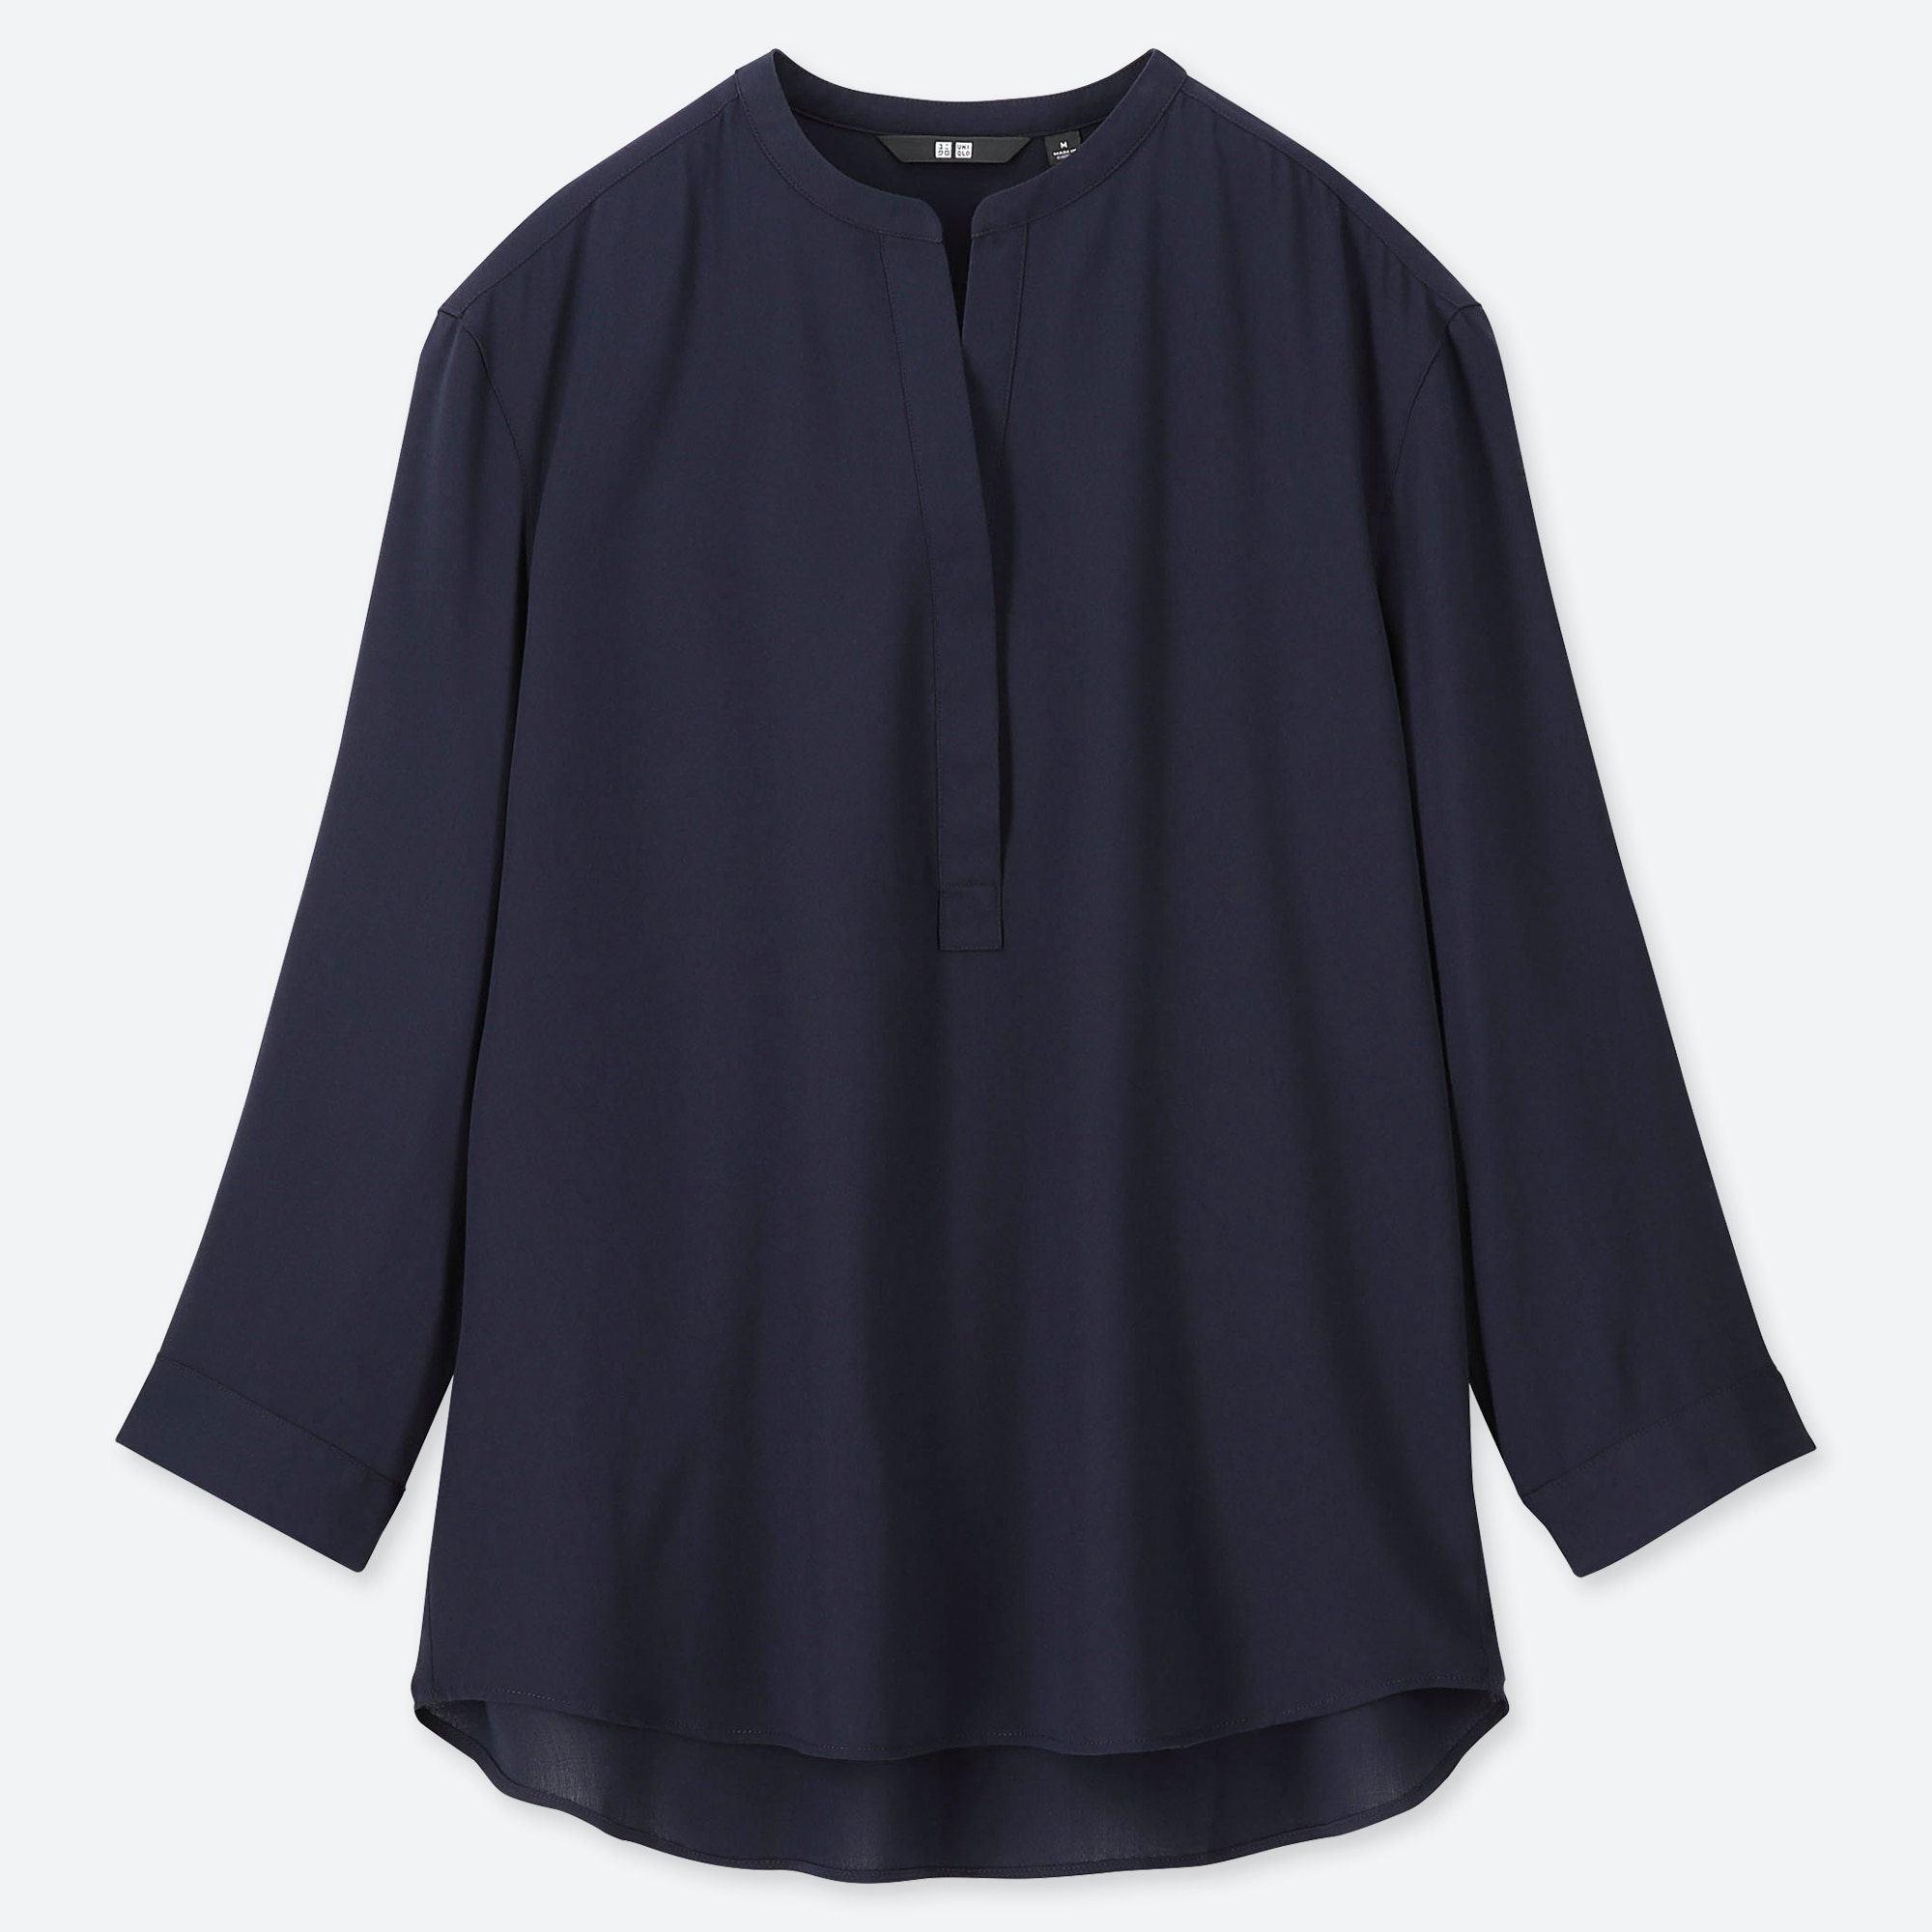 a354d49353d271 WOMEN RAYON STAND COLLAR 3/4 SLEEVE BLOUSE, NAVY, large